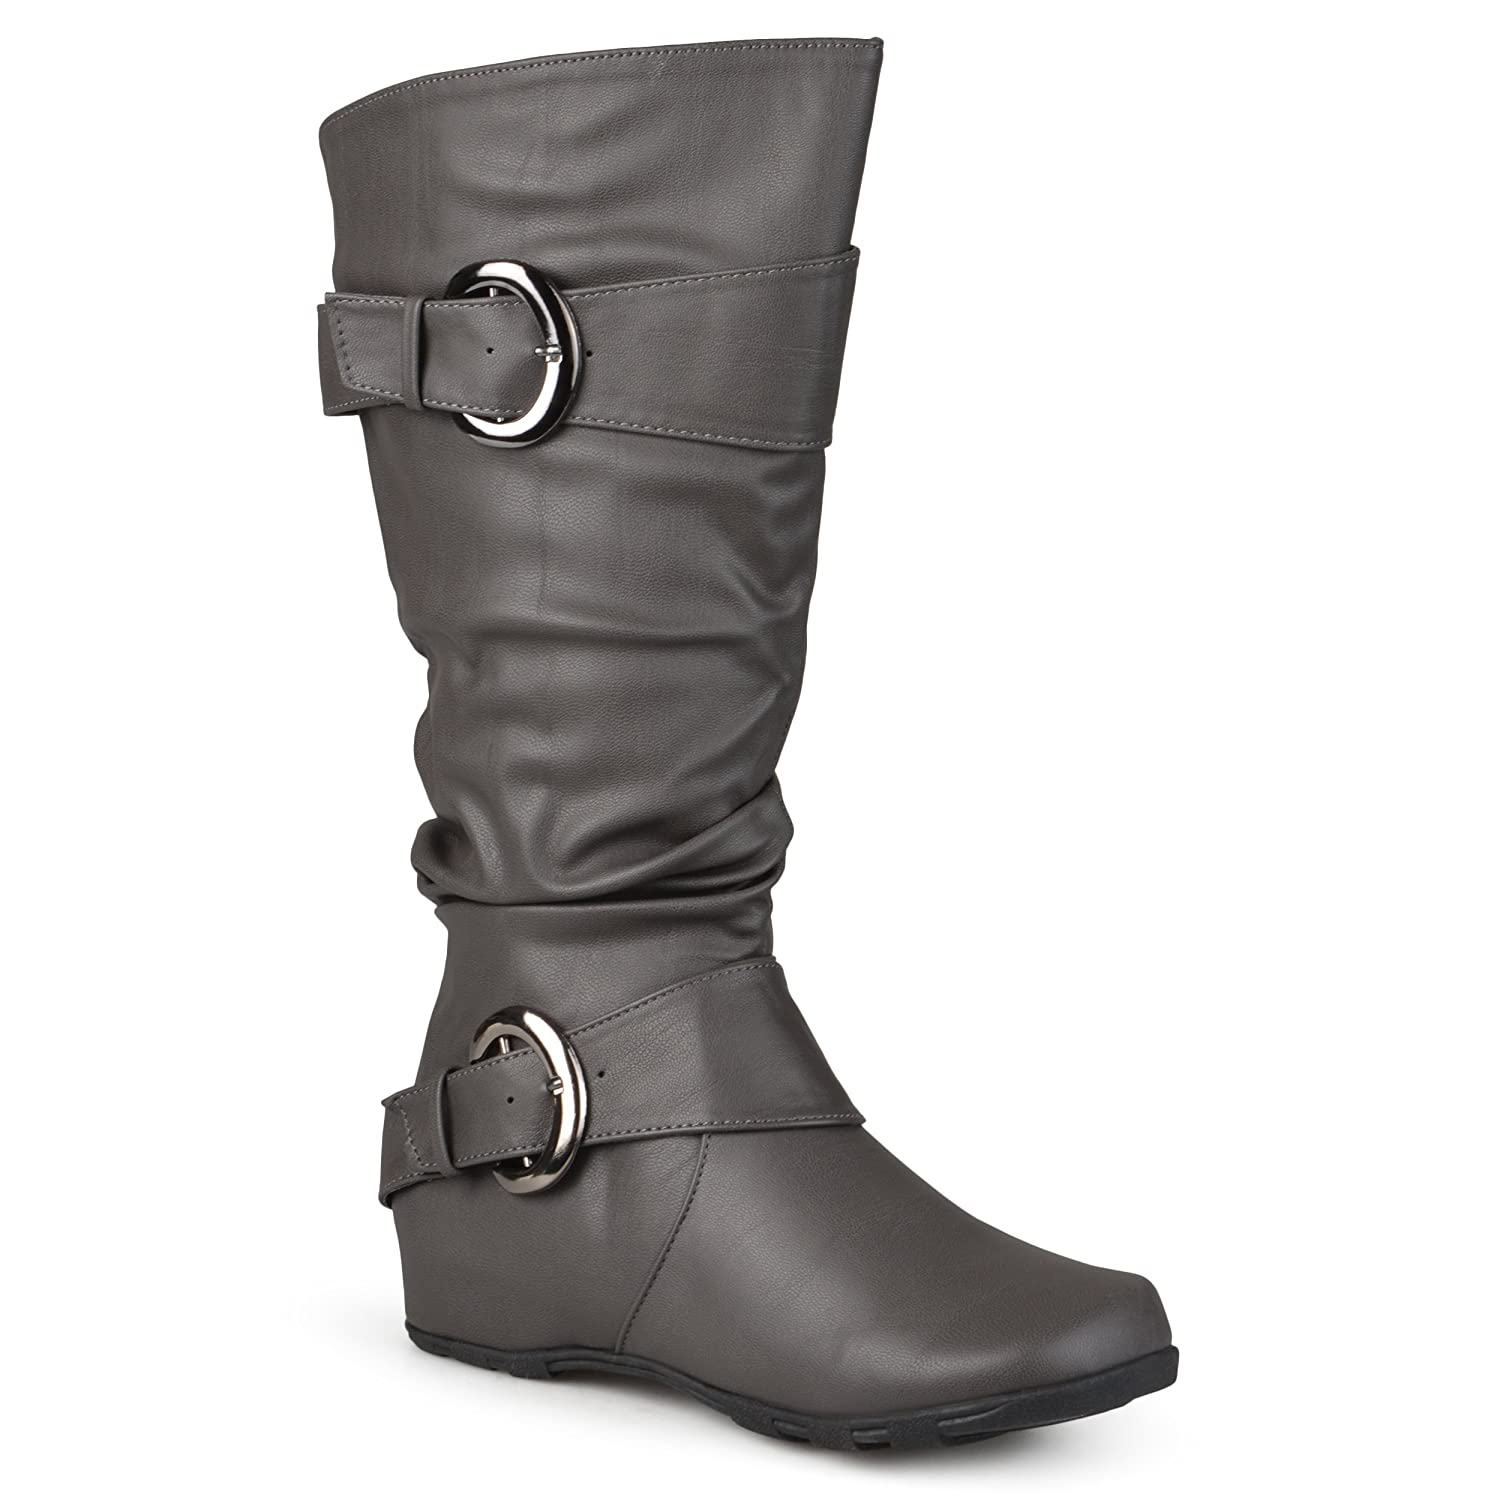 Wide extra calf boots for women cheap 2019